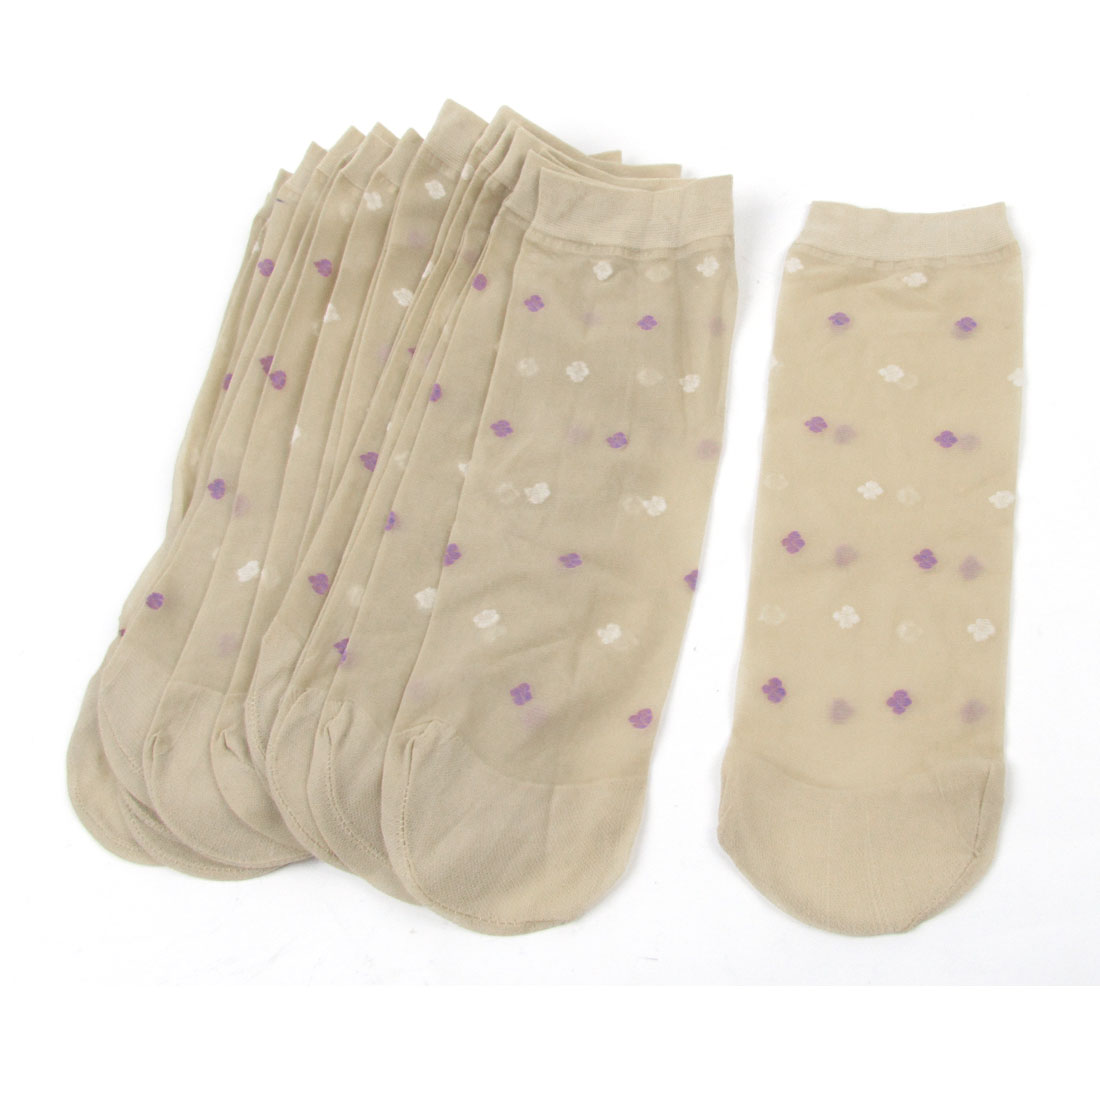 10 Pairs Flower Printed Soft Elastic Beige Sheer Socks for Ladies